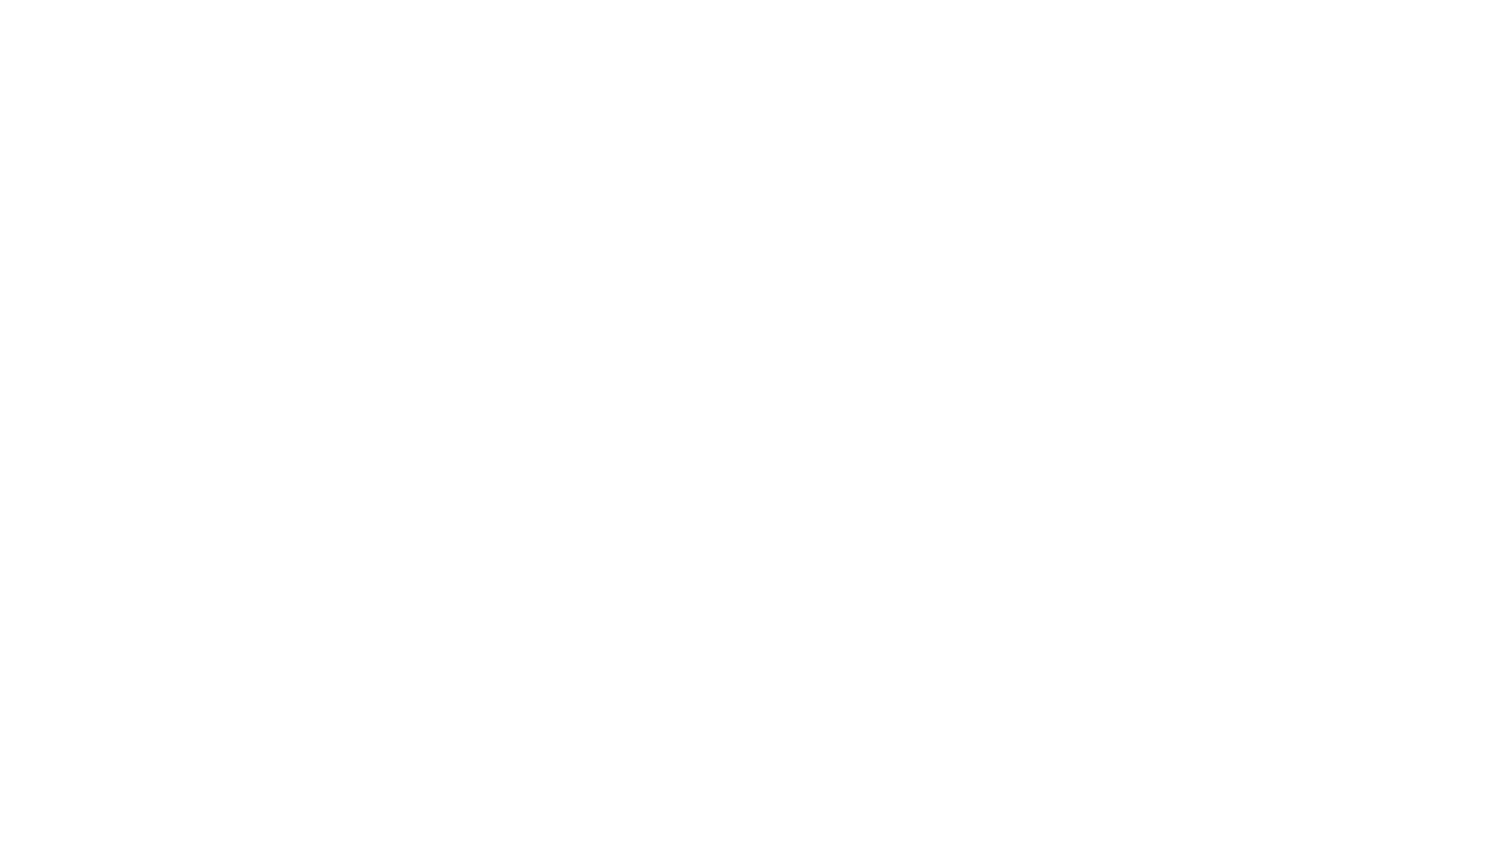 Chandler Carter